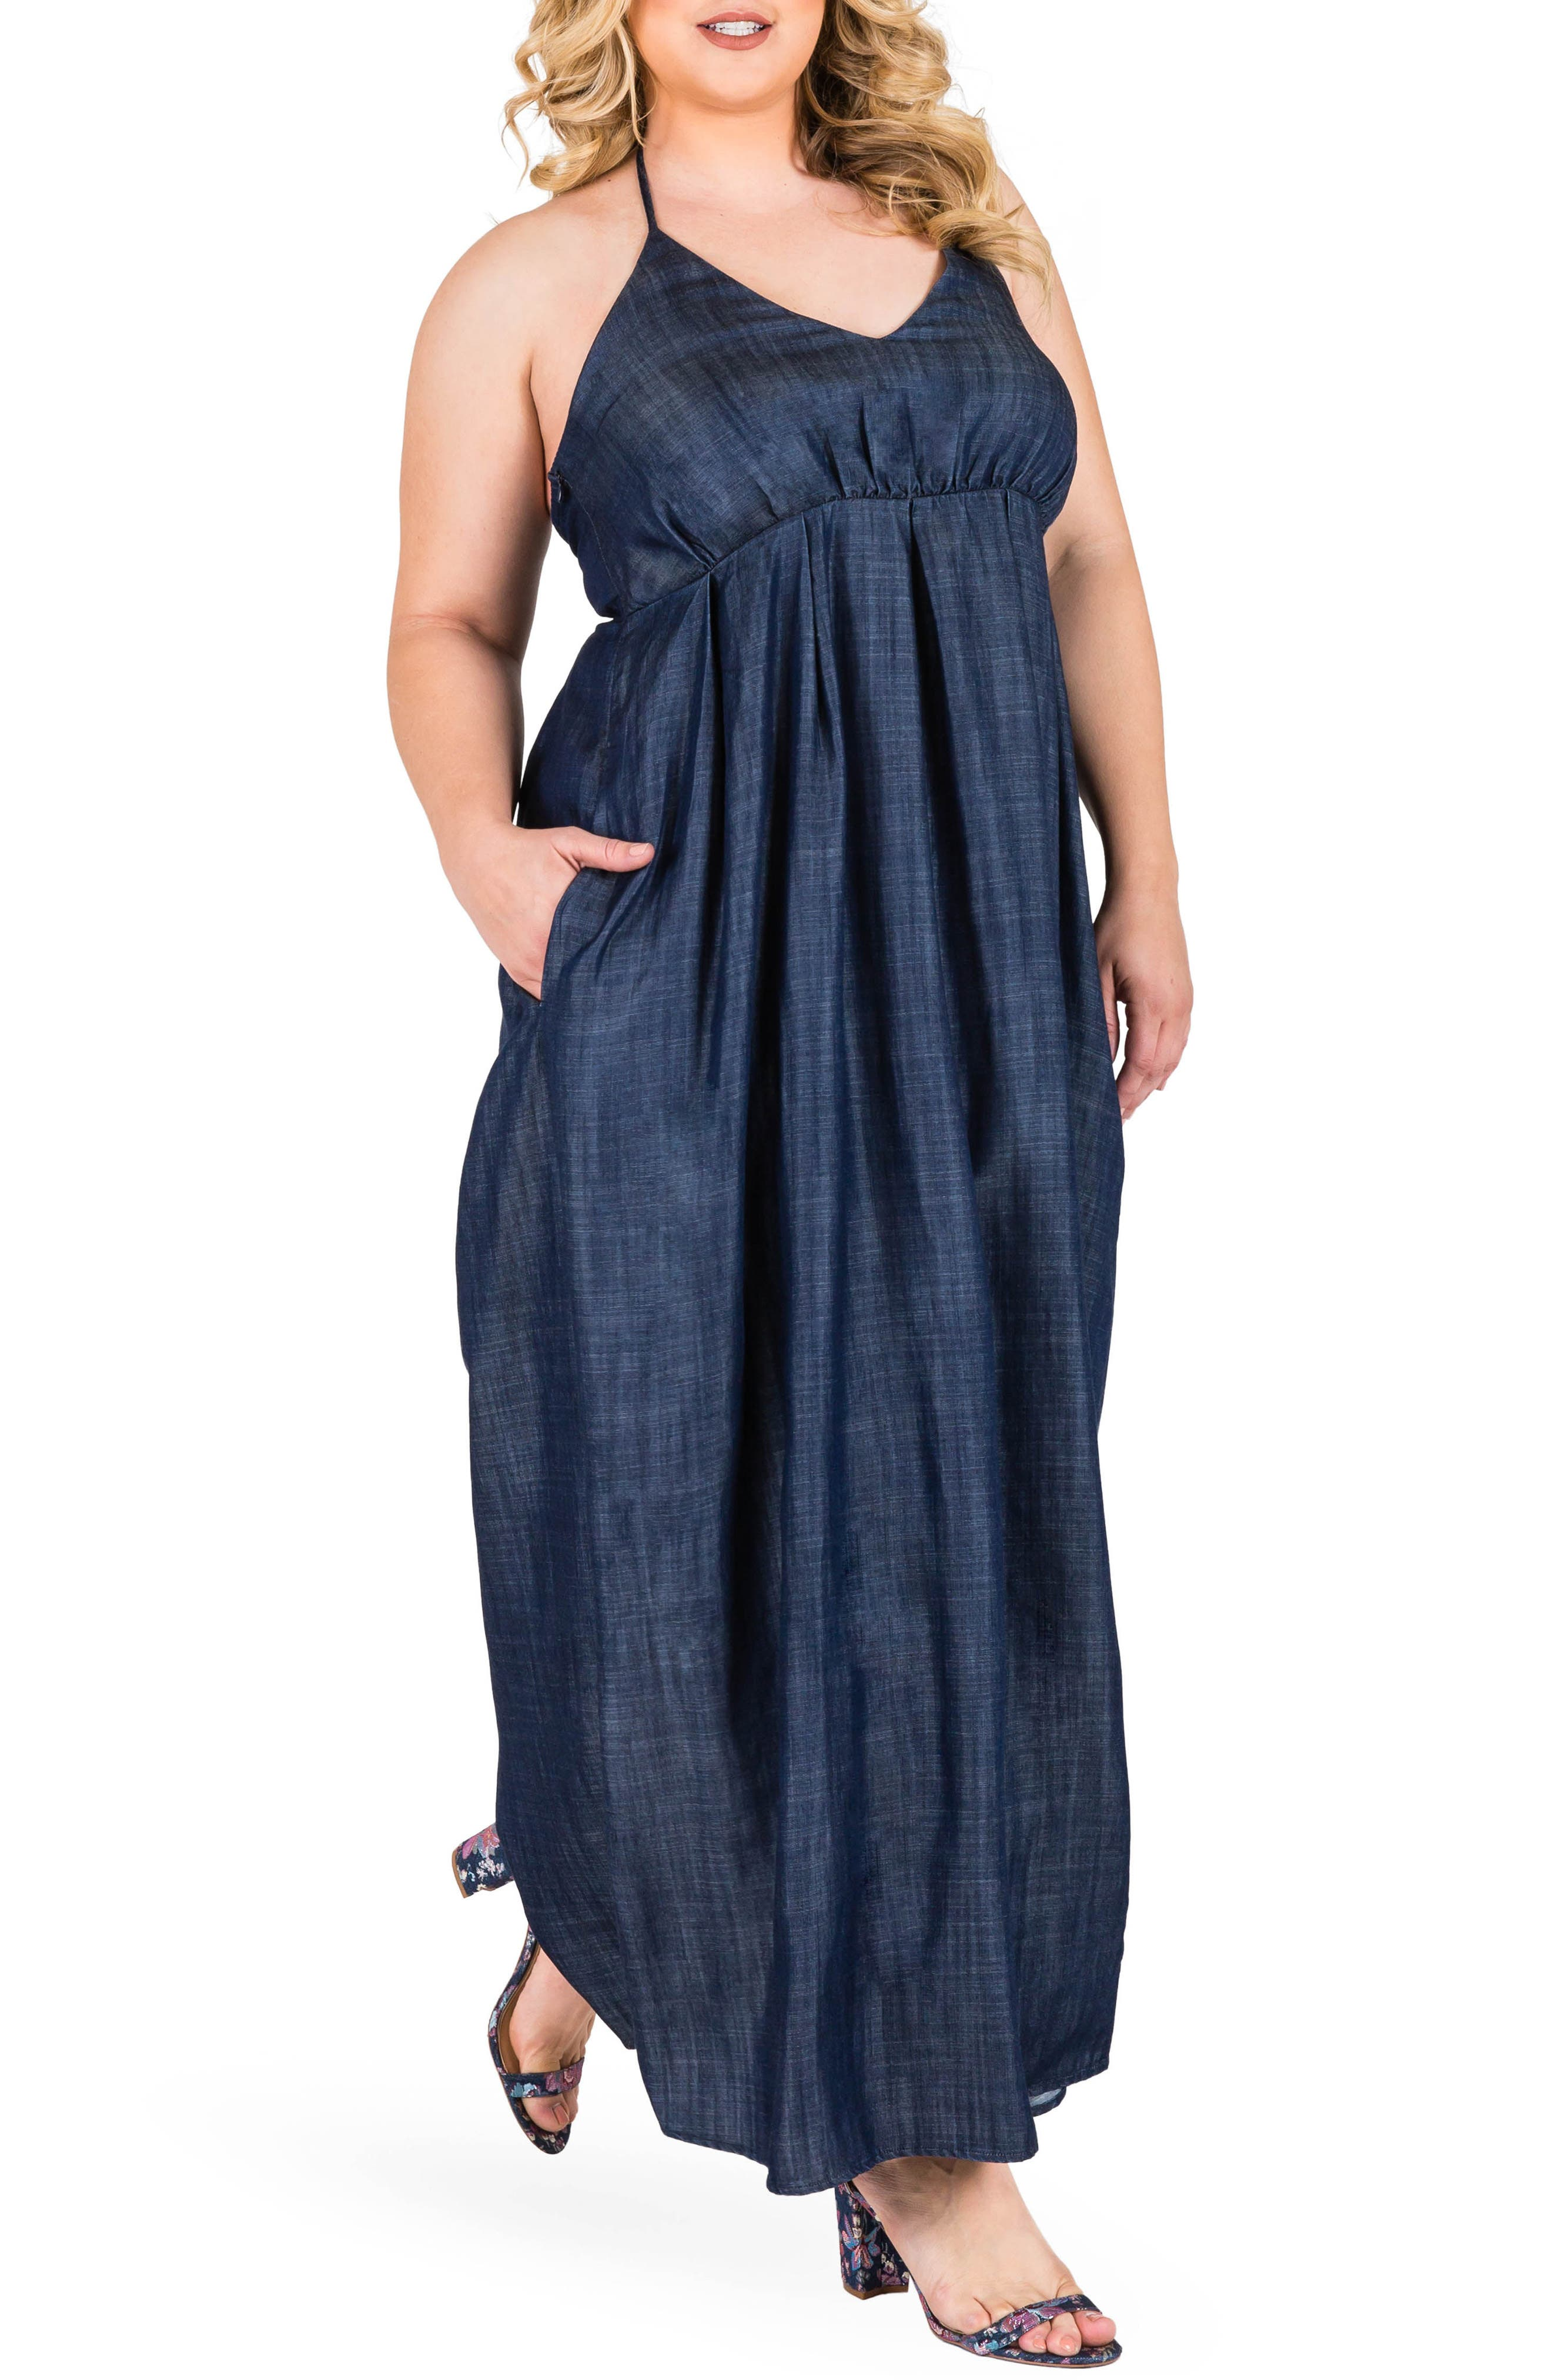 STANDARDS & PRACTICES Maui Maxi Chambray Halter Dress, Main, color, DARK BLUE